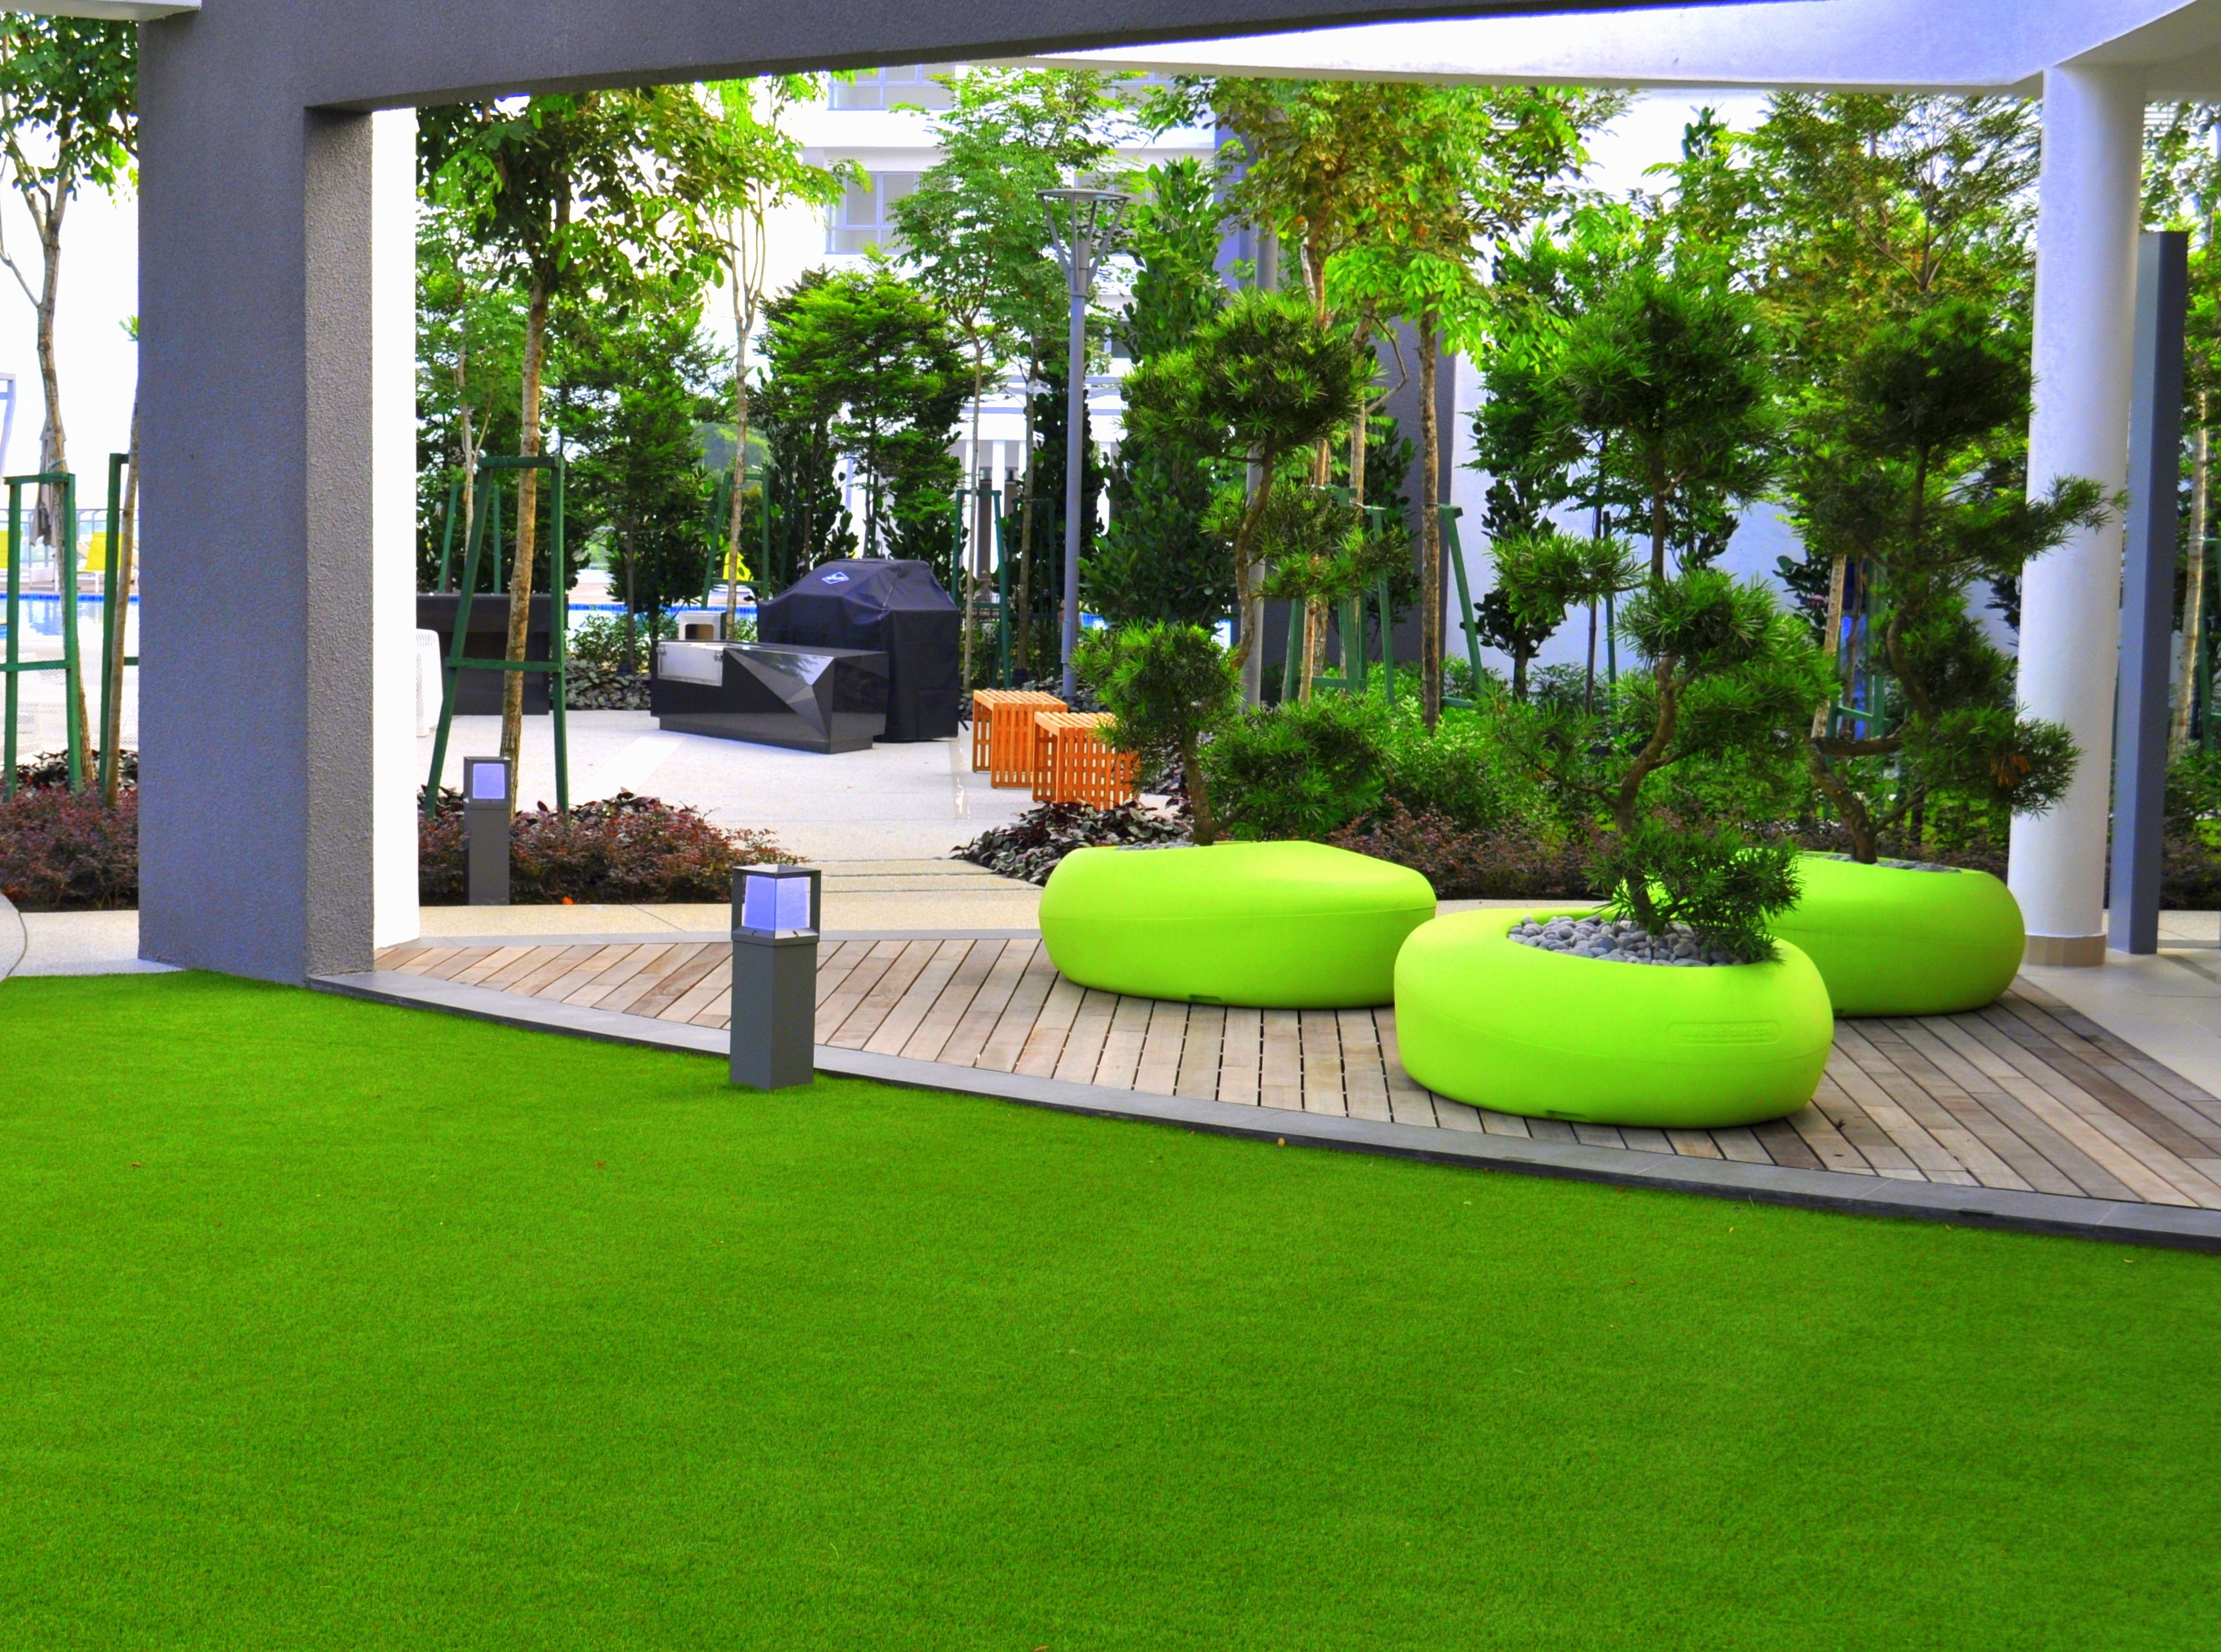 Proud of this artificialgrass installation with